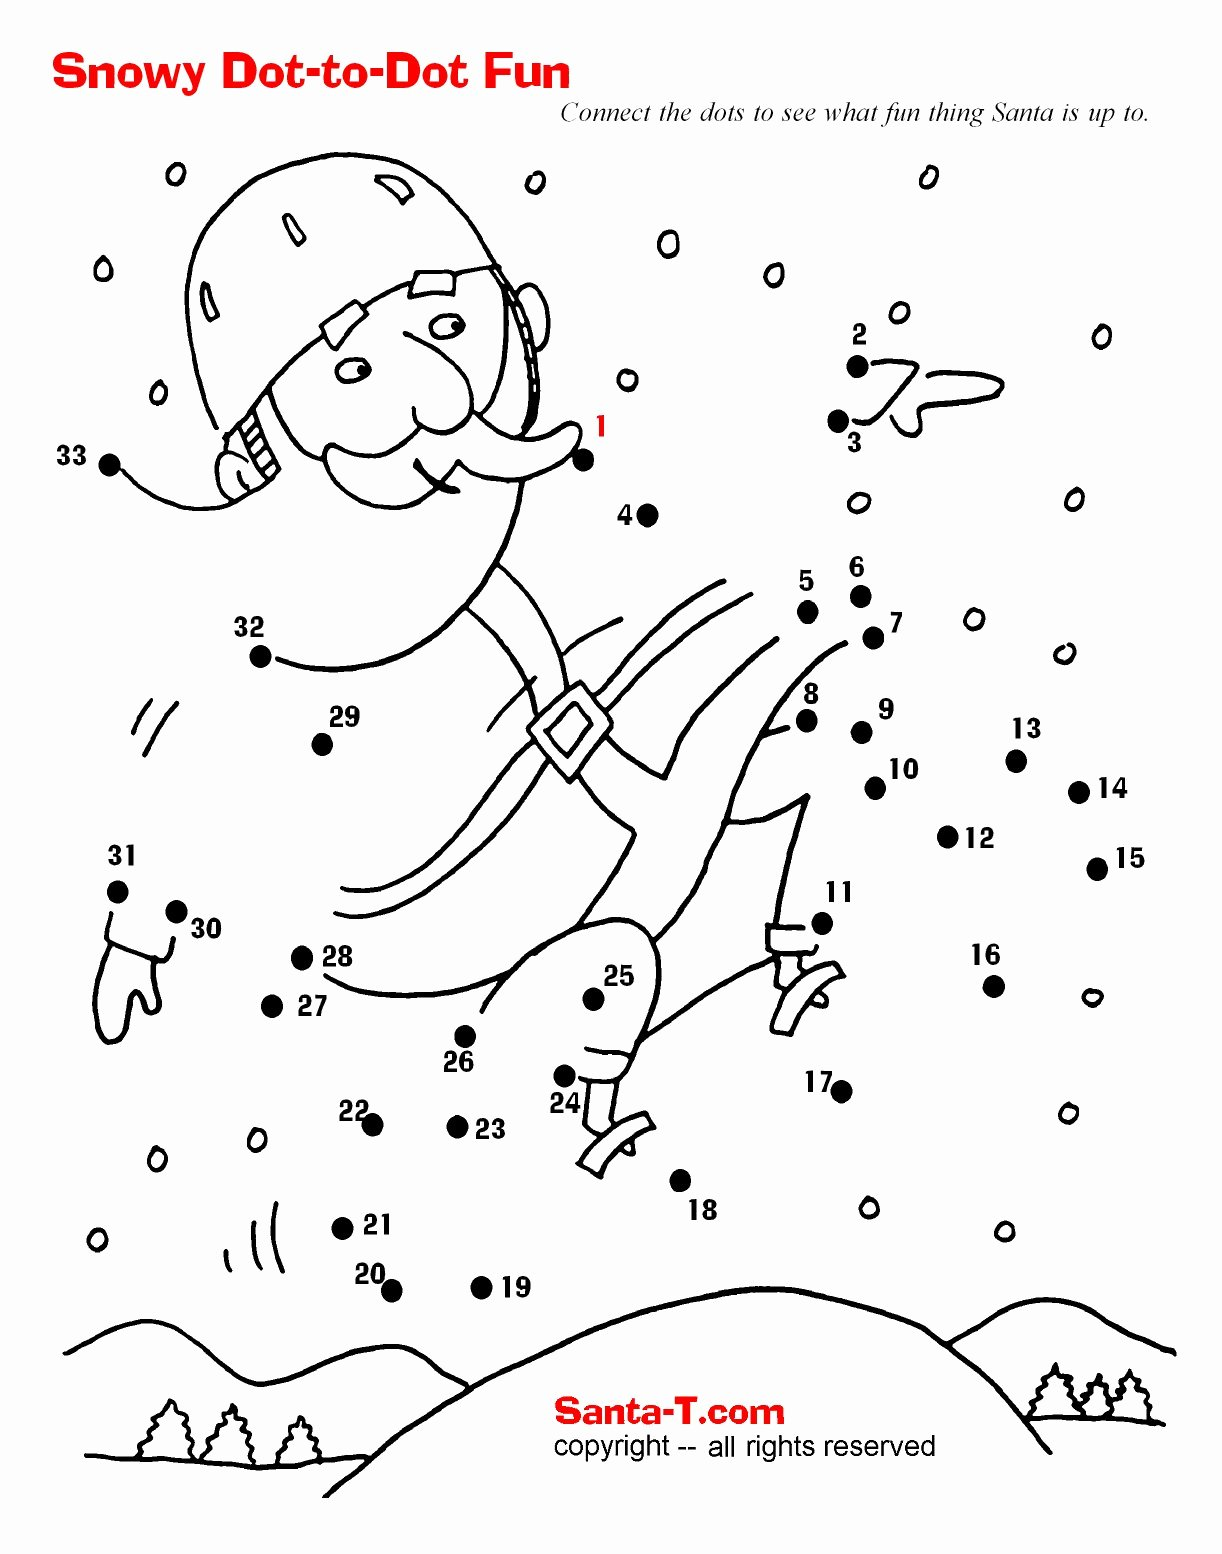 Christmas Connect the Dots Printables Printable Awesome Connect the Dots Coloring Pages for Teens